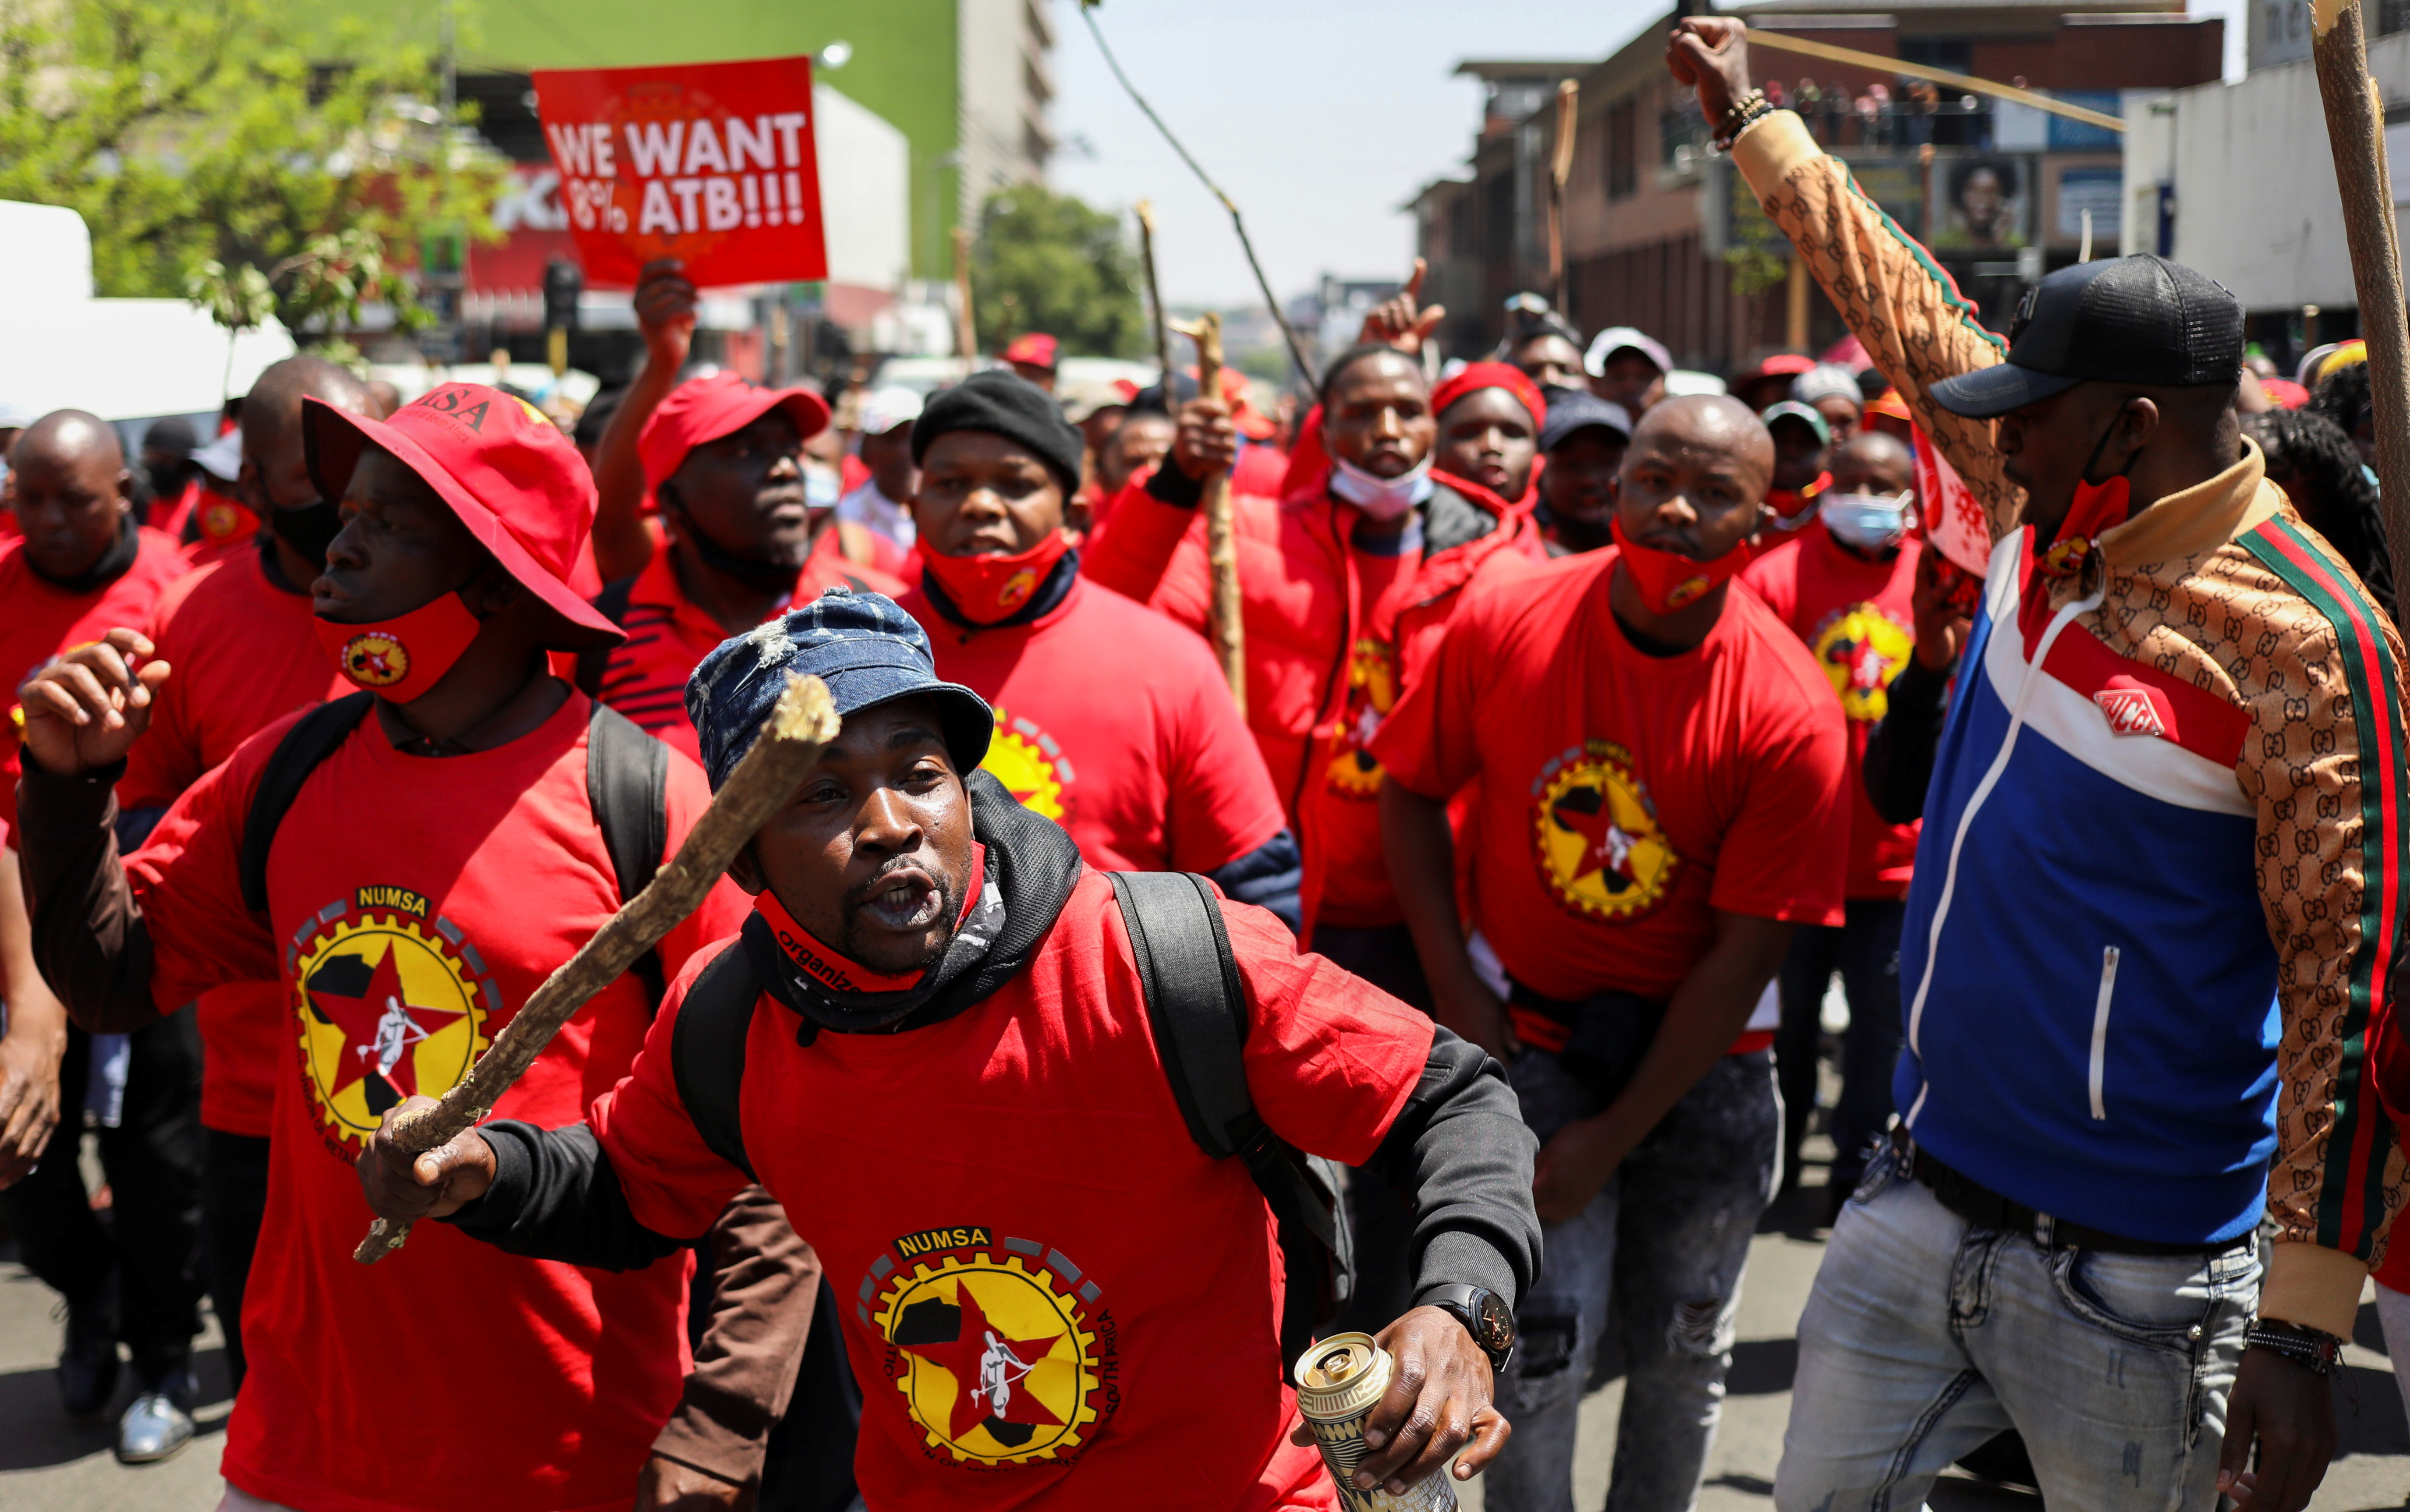 Members of the National Union of Metalworkers of South Africa (NUMSA) march during a strike, threatening to choke supplies of parts to make new cars and accessories, in Johannesburg, South Africa, October 5, 2021. REUTERS/Siphiwe Sibeko